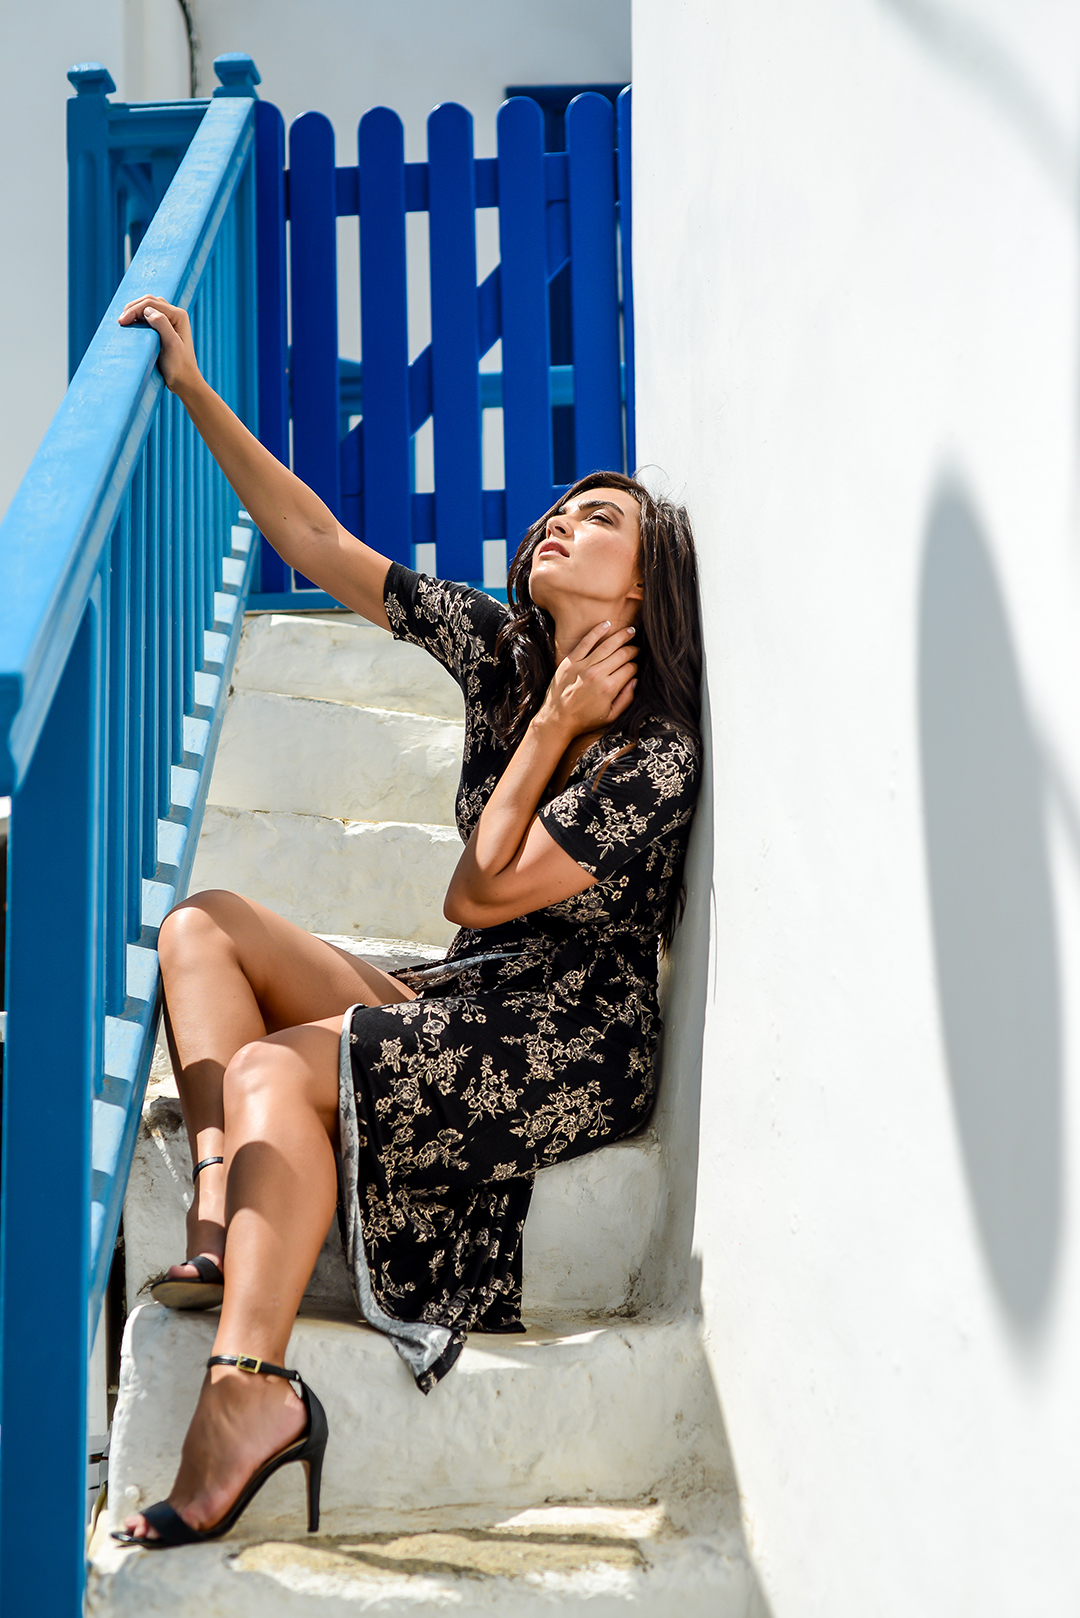 mykonos photographer blogger #mykonosphotographer mykonosgreece #mykonosphotography portrait lifestyle #mykonosportrait blogger photographer mykonos magazine small street little venice shooting